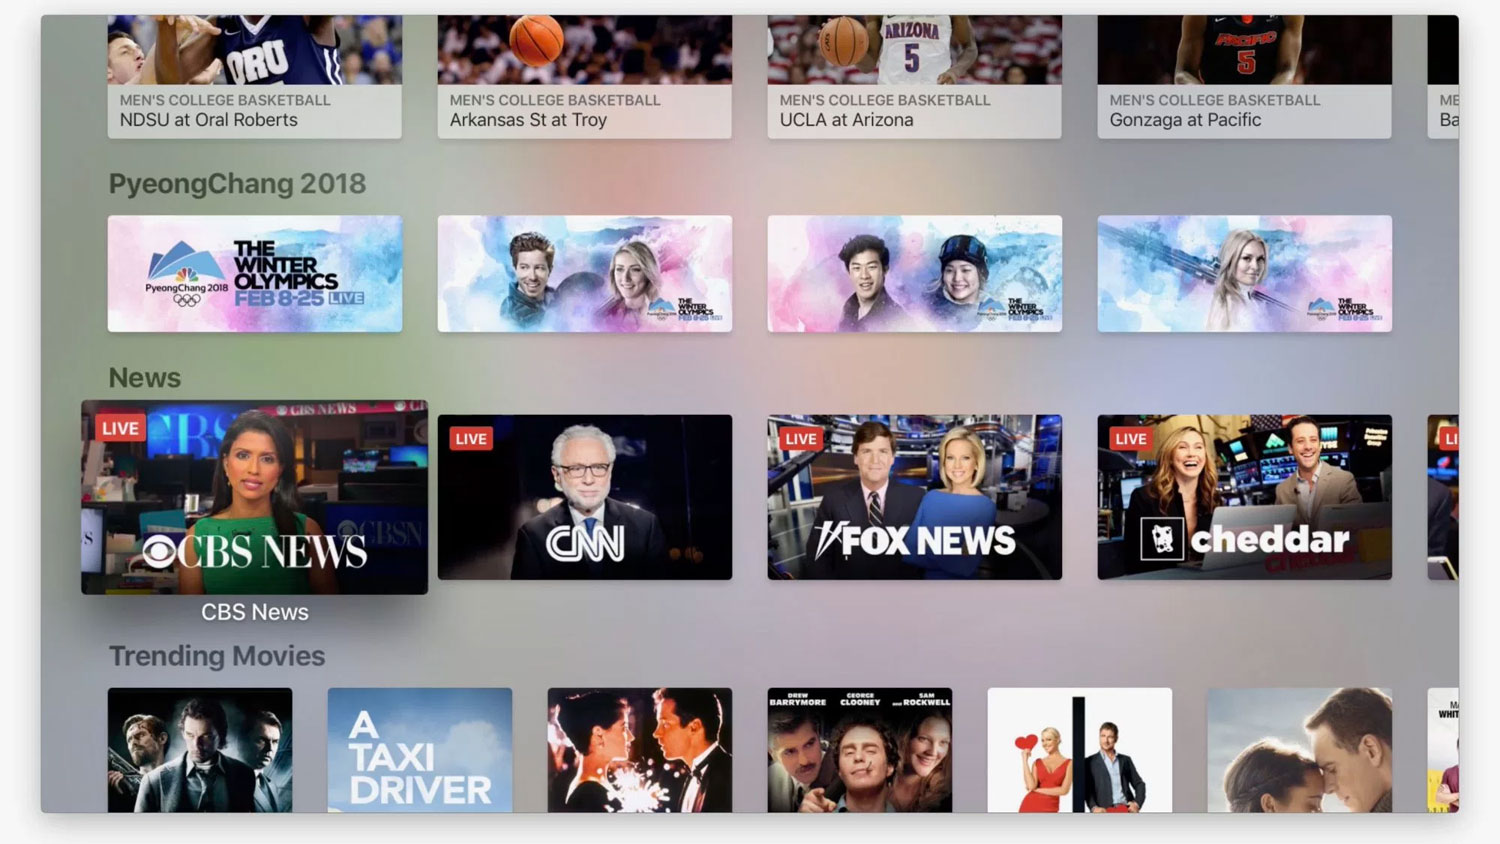 Apple adds live news section to its 'TV' app - FlatpanelsHD